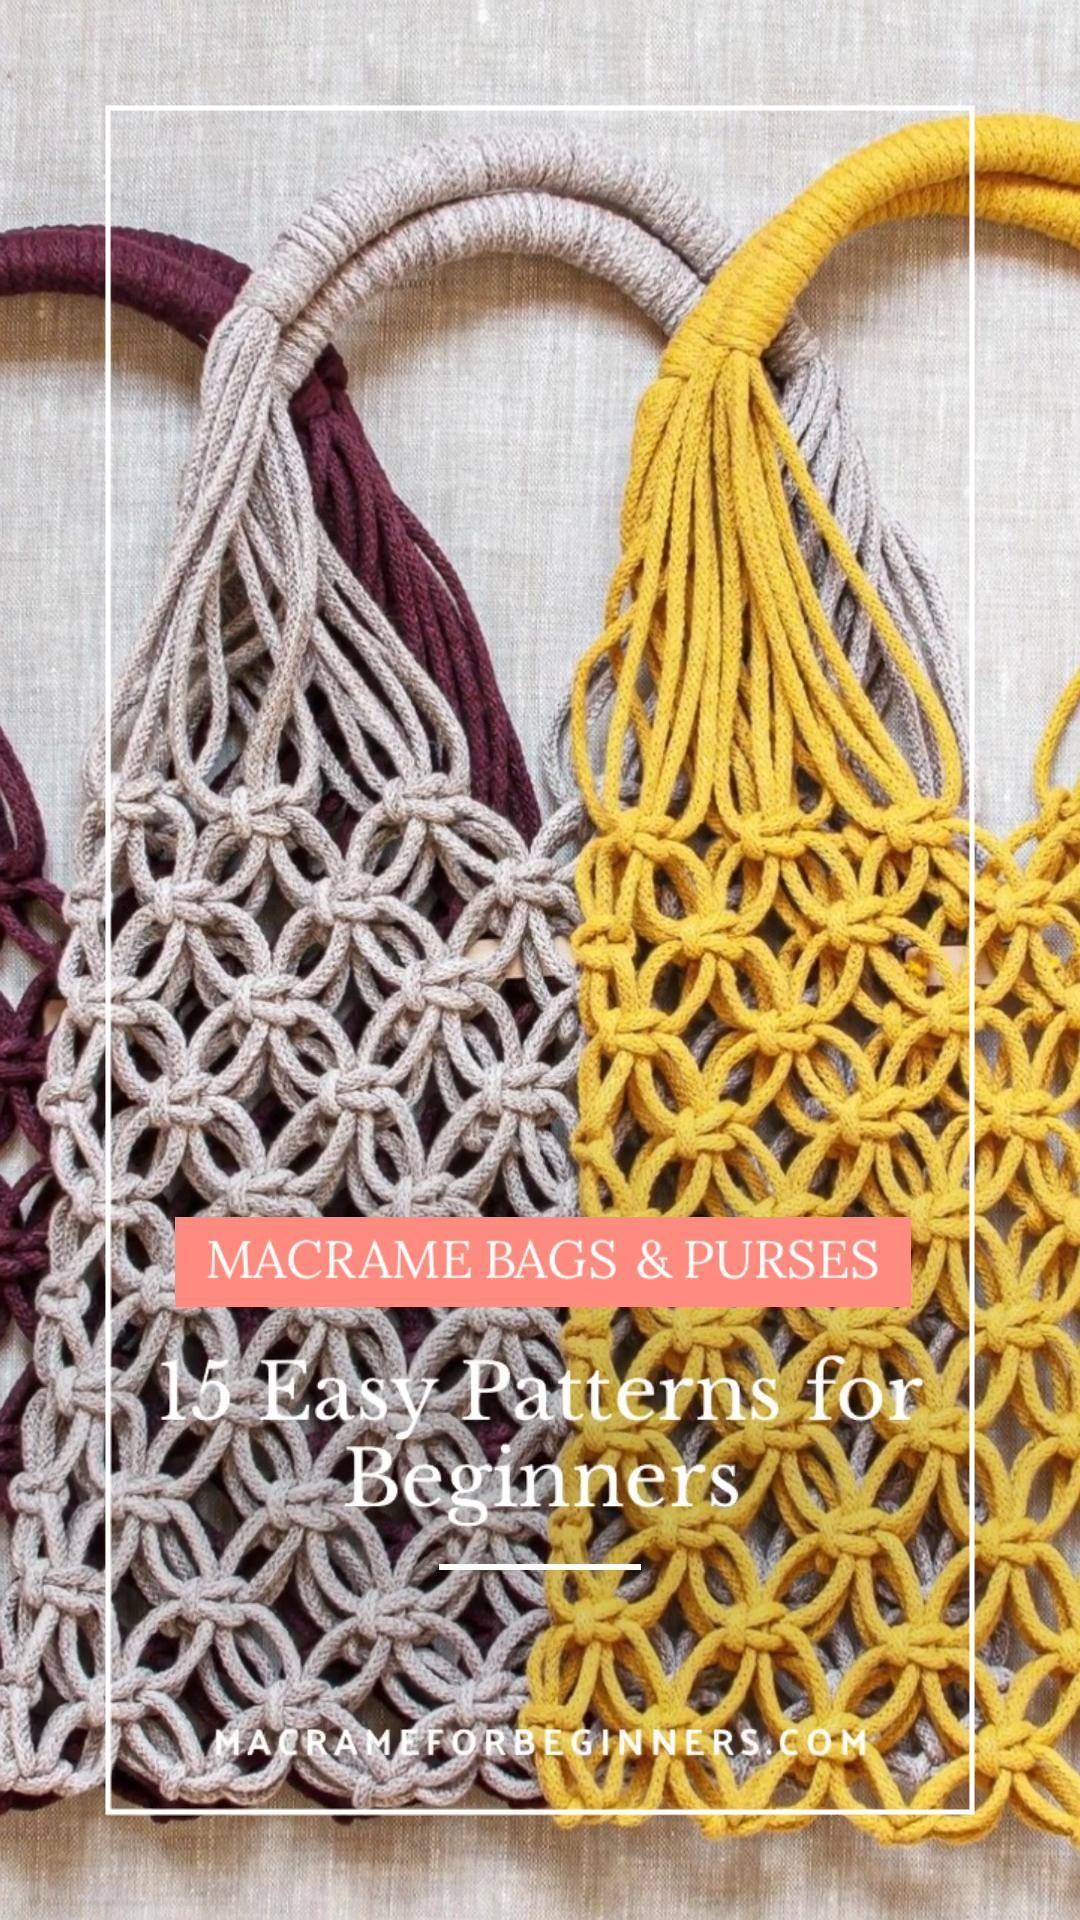 15 Easy DIY Macrame Bags, Purses and Clutches for Beginners | Macrame for Beginners